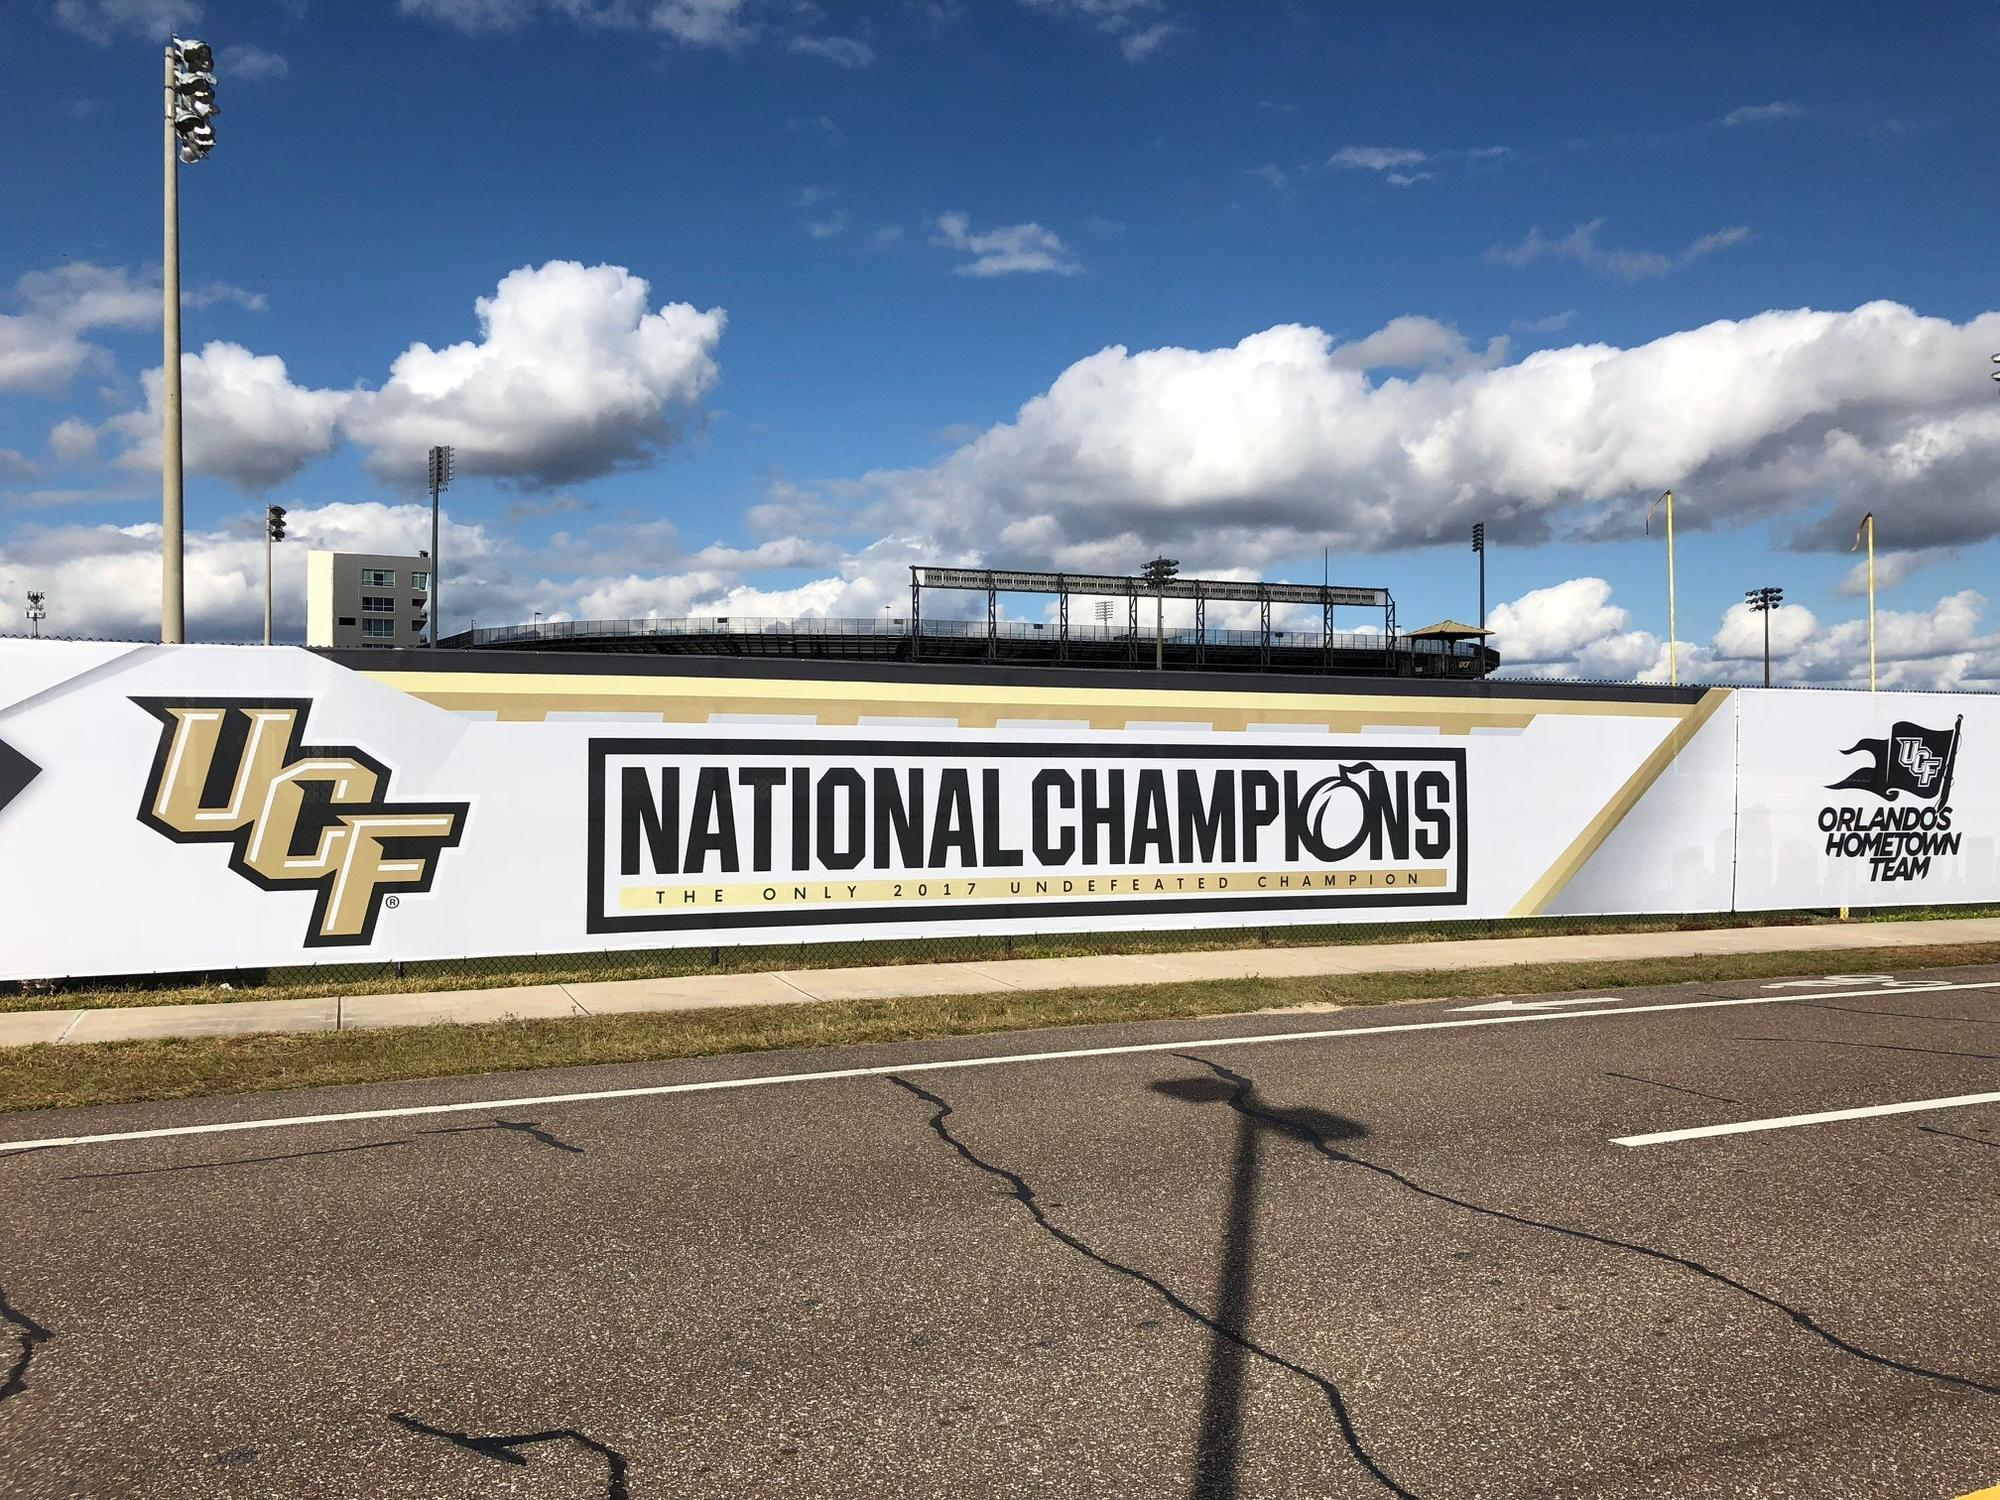 Ucf Adds National Champions Banner To Football Practice